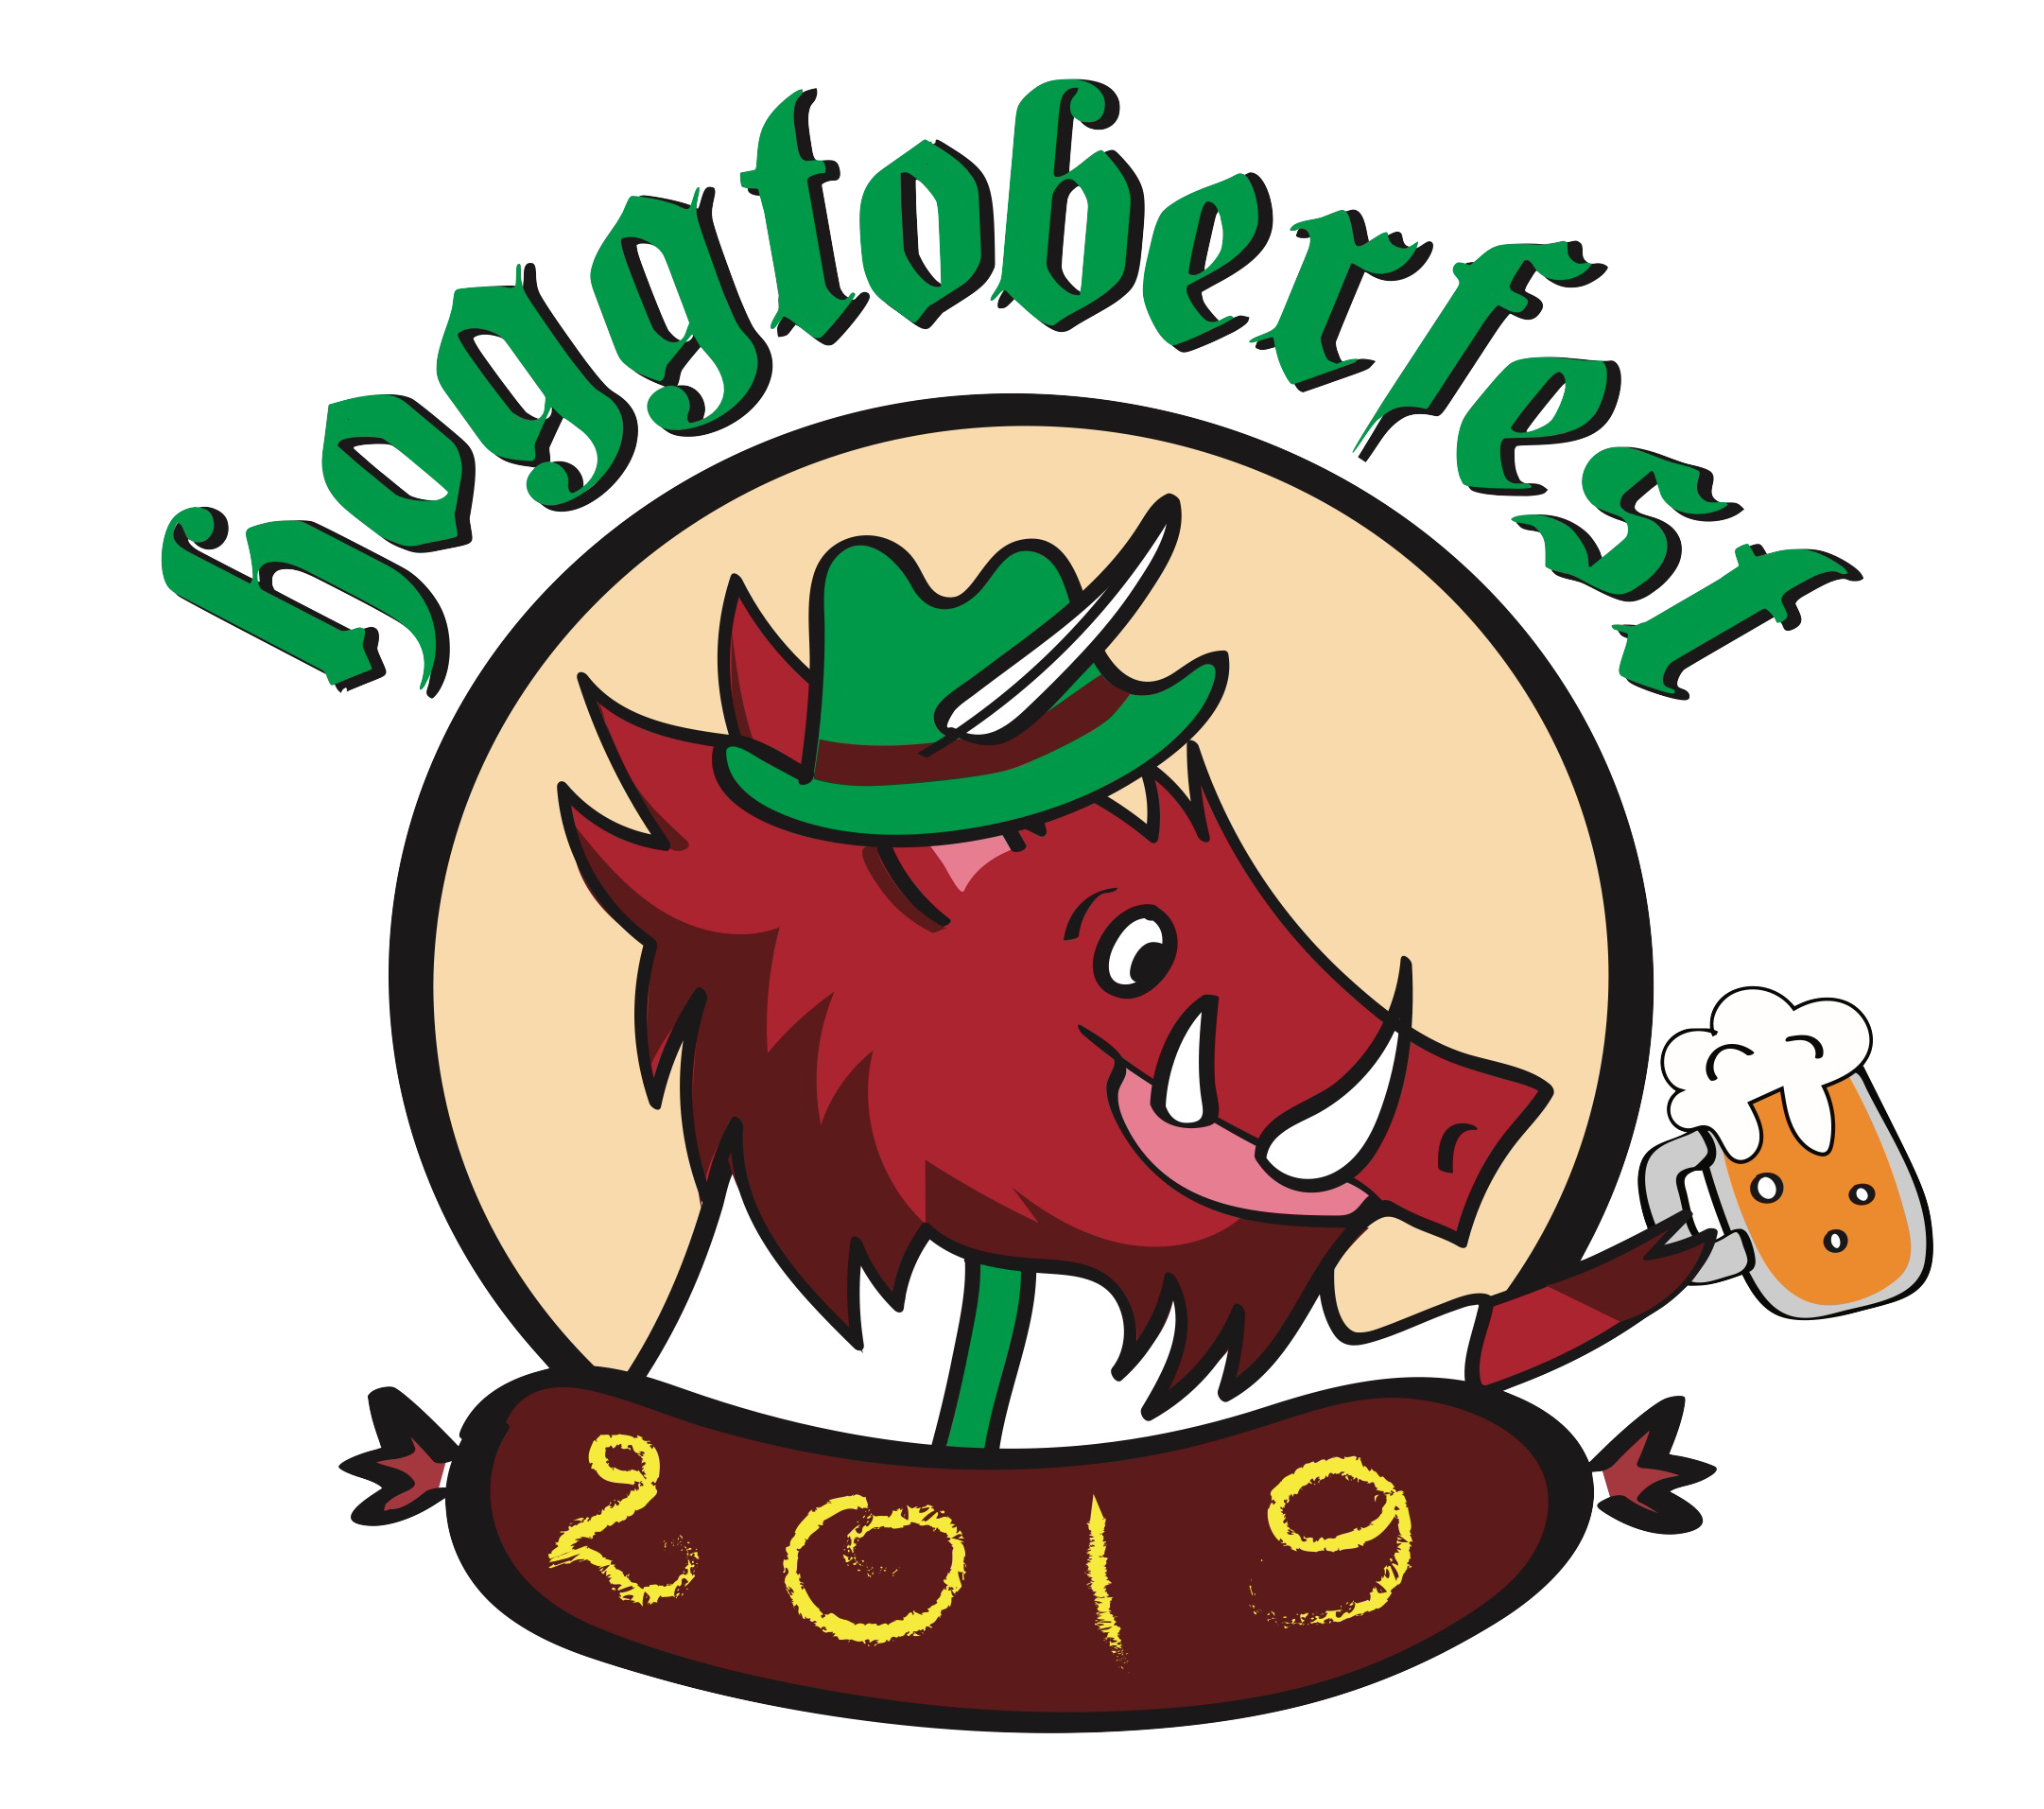 Hogg-toberfest! The Fall 2019 auction from the James S. Hogg PTA in Houston, Texas.